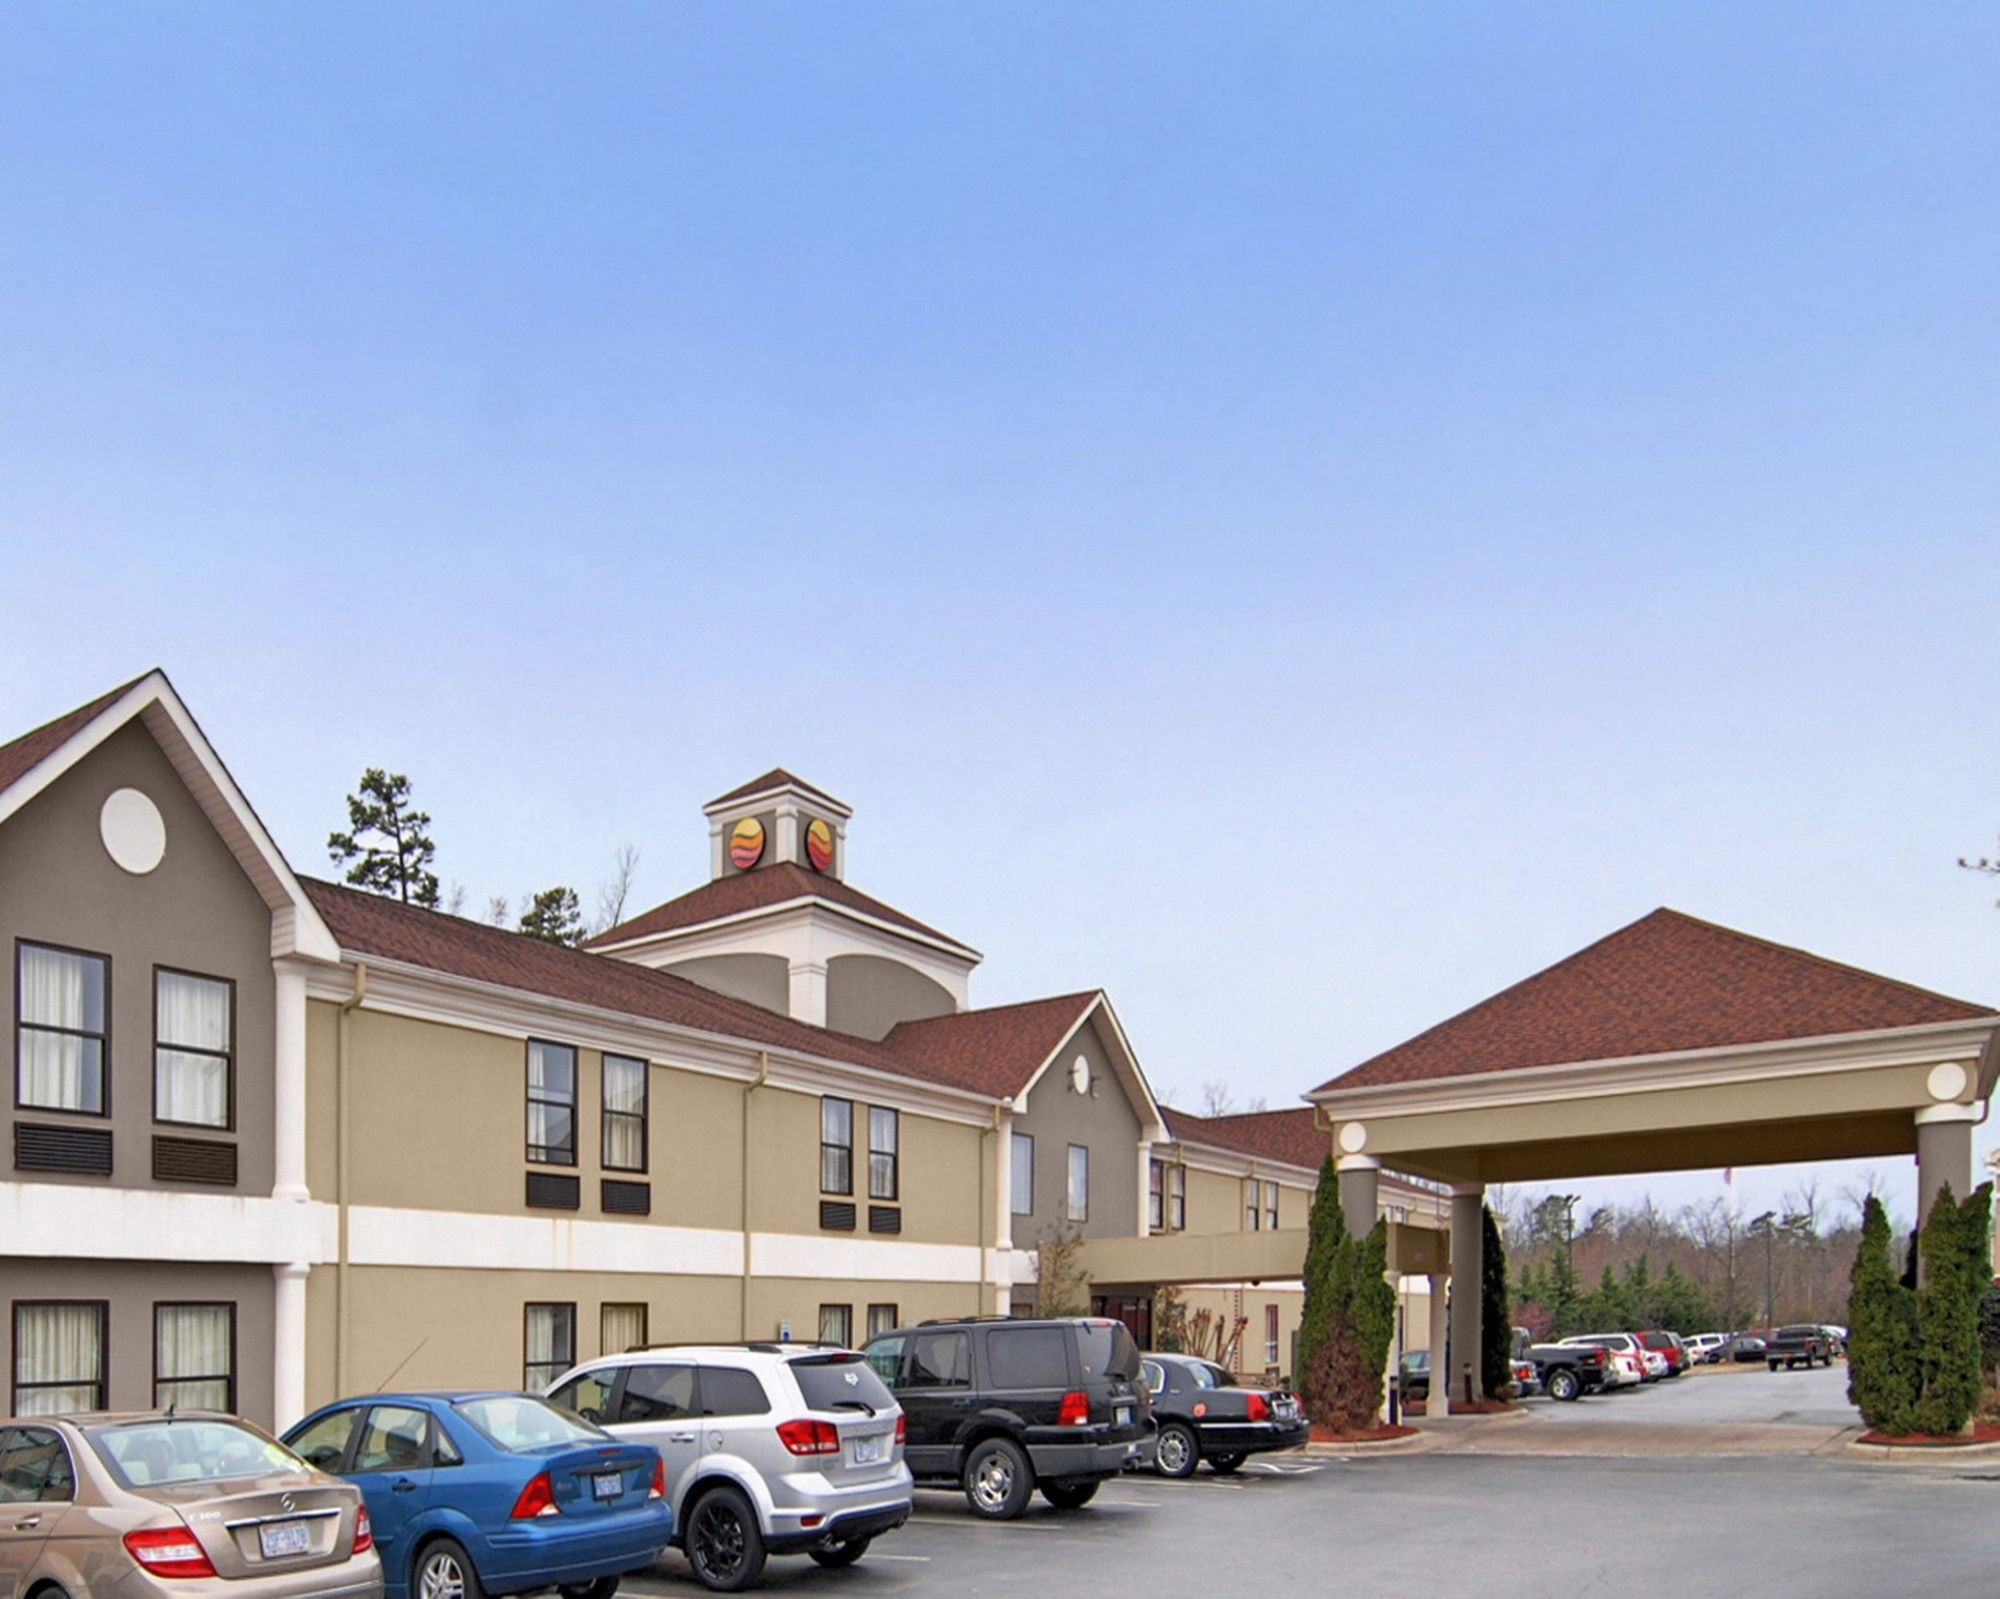 Comfort Inn & Suites Archdale in Archdale, NC